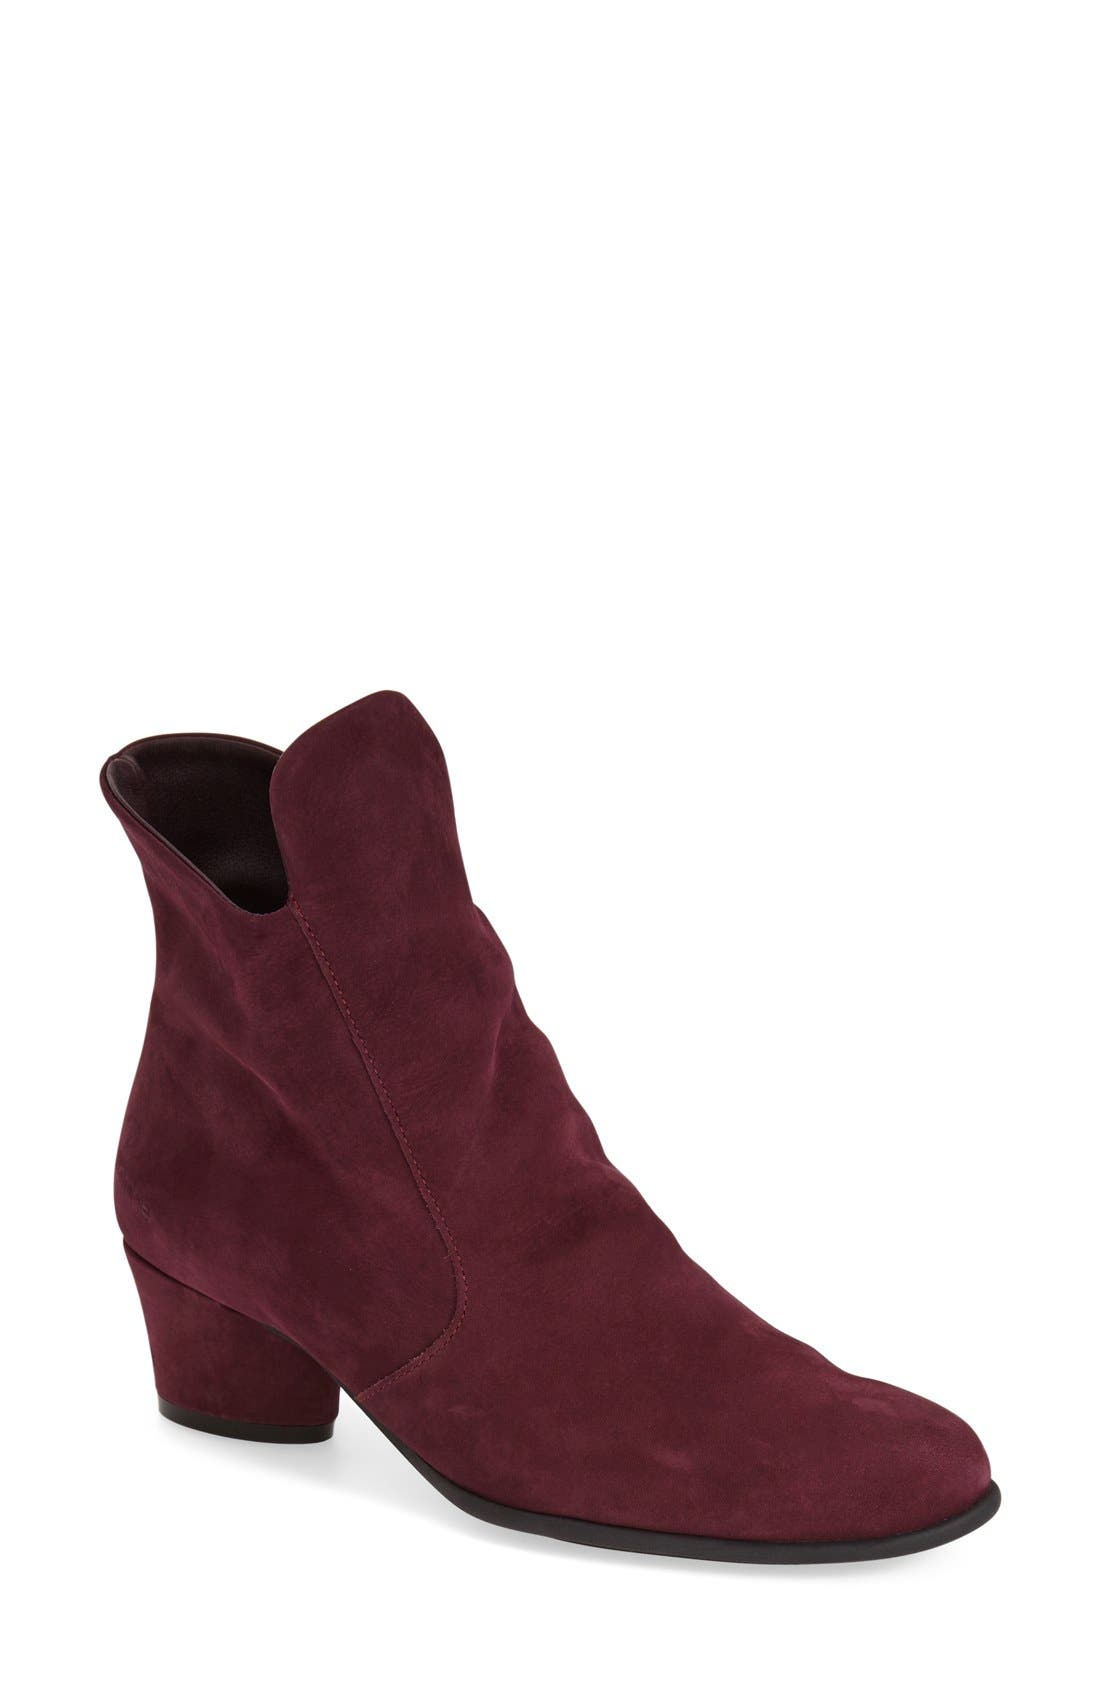 'Musaca' Boot,                             Main thumbnail 1, color,                             Berry Nubuck Leather